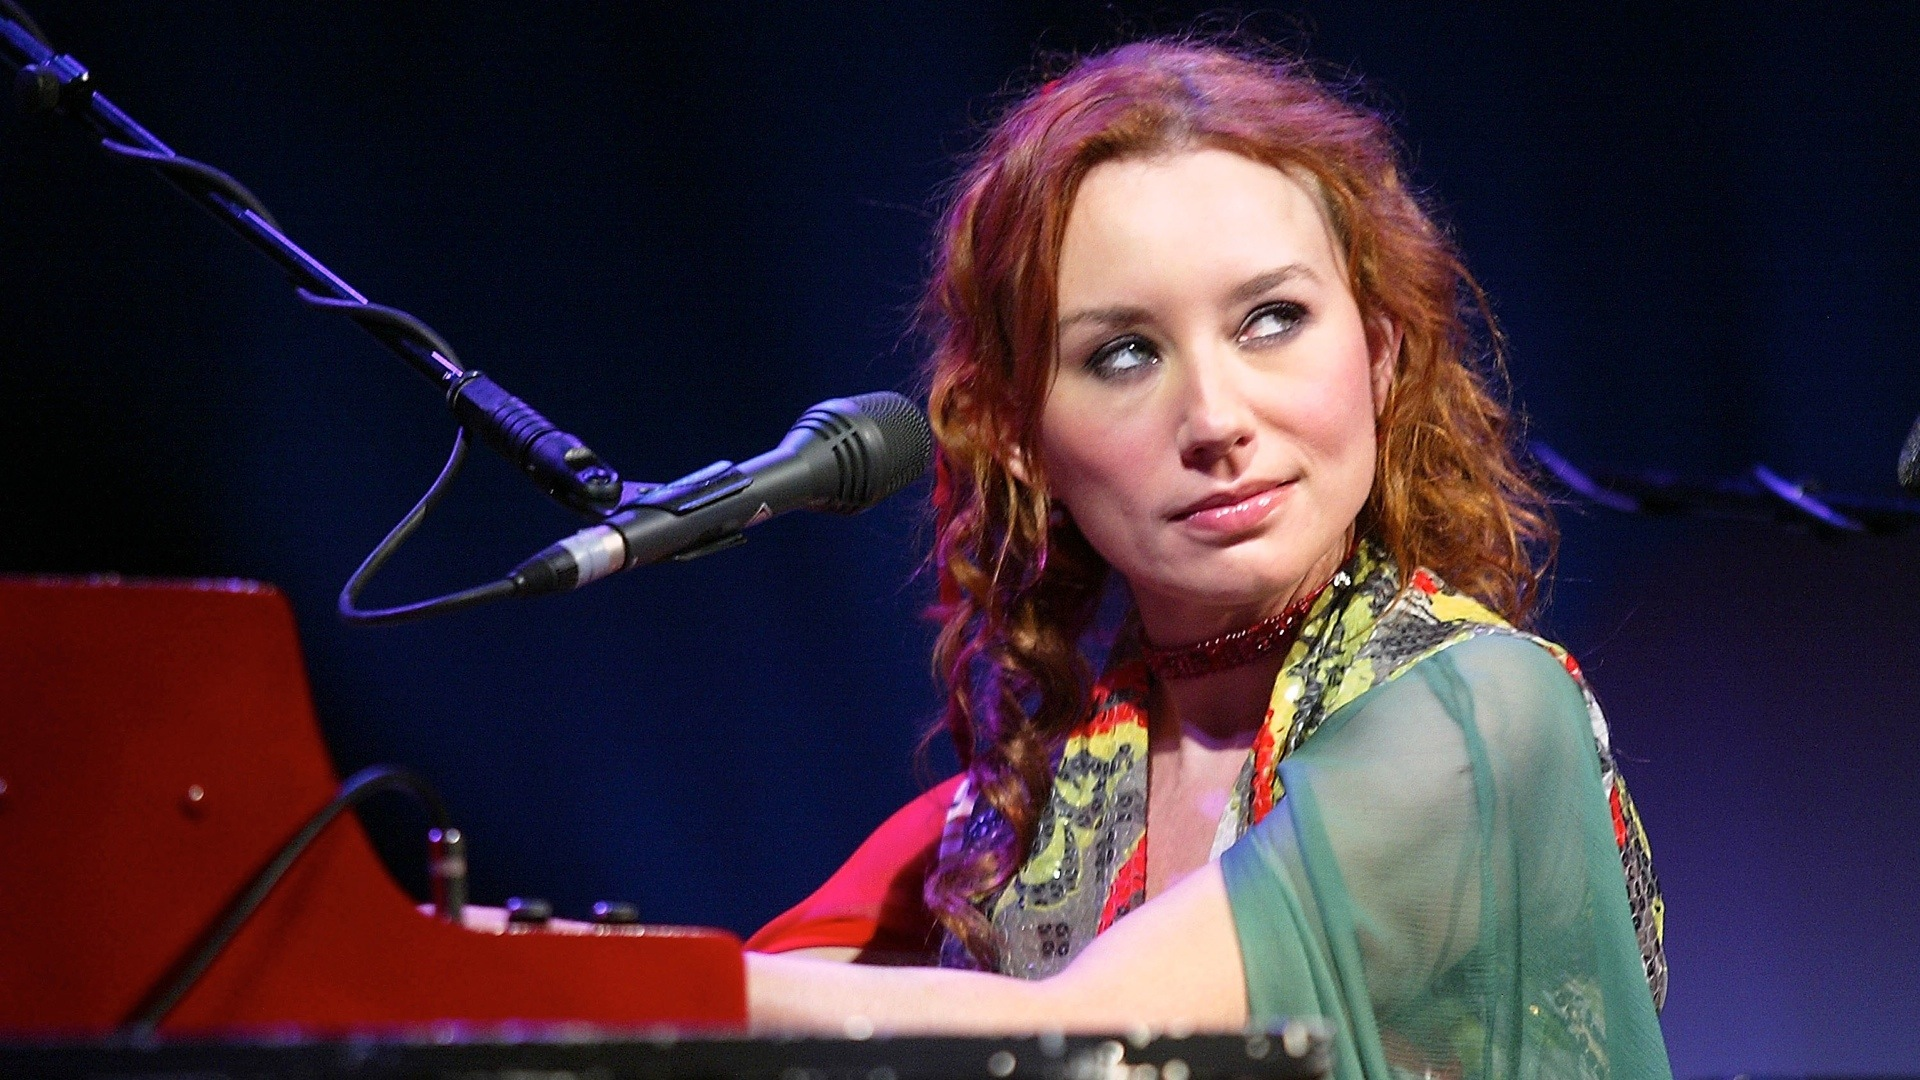 NEW YORK - MARCH 7:  Tori Amos performs during sound check before her sold-out concert at Radio City Music Hall March 7, 2003 in New York City.  (Photo by Scott Gries/Getty Images)